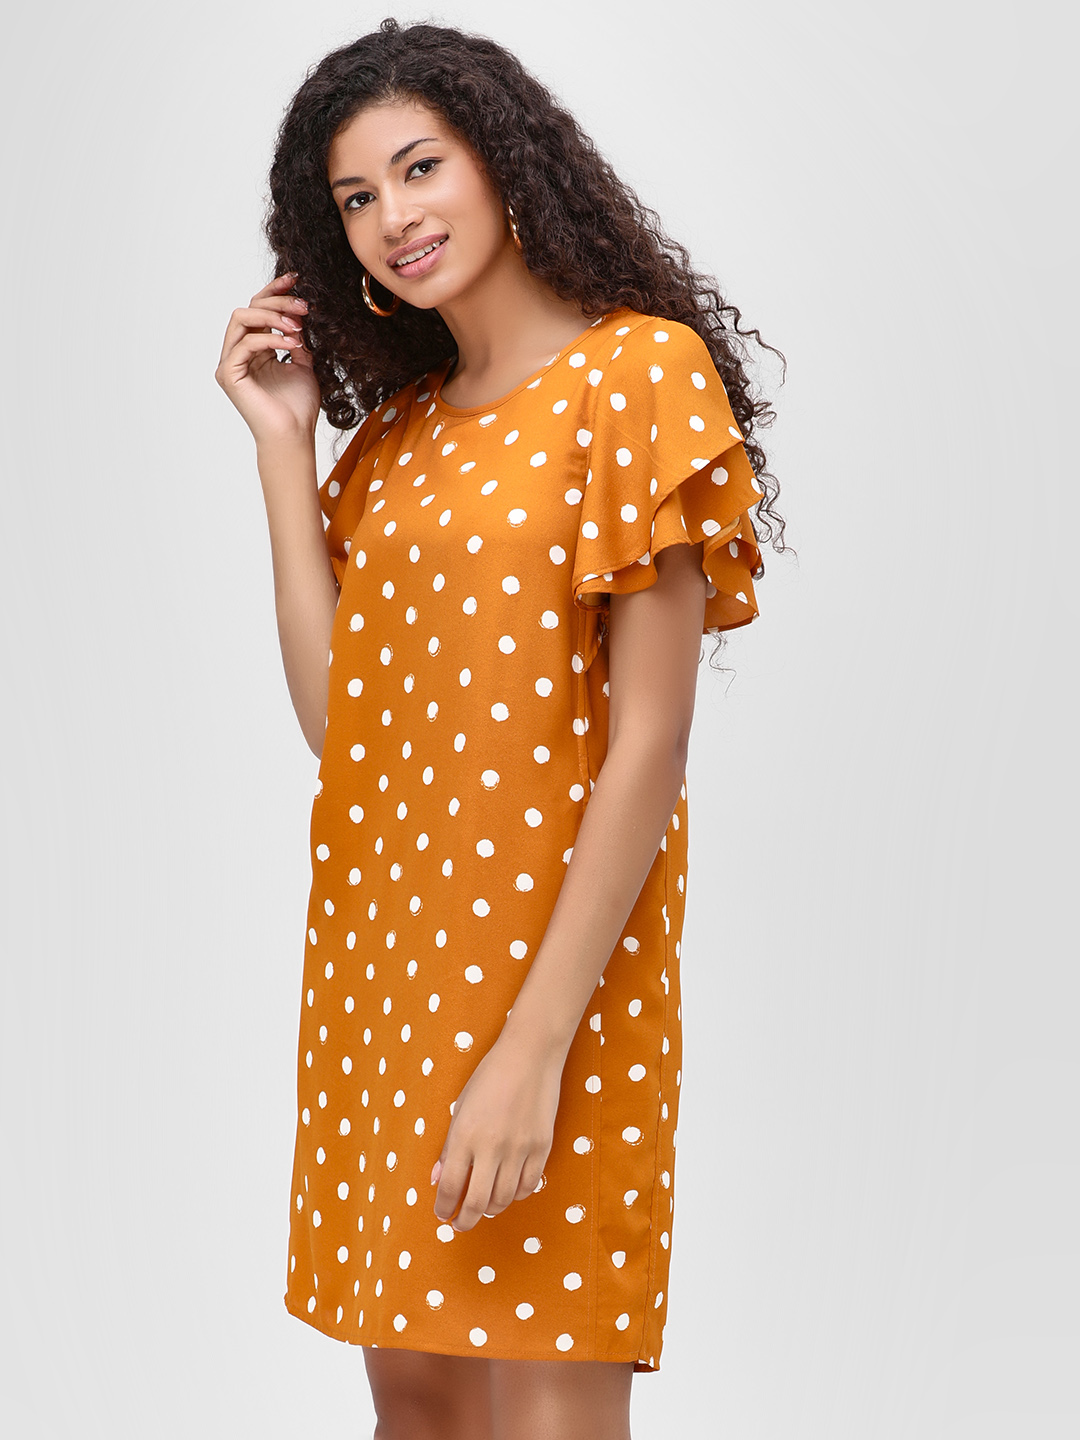 Vero Moda Mustard Polka Dot Print Shift Dress 1